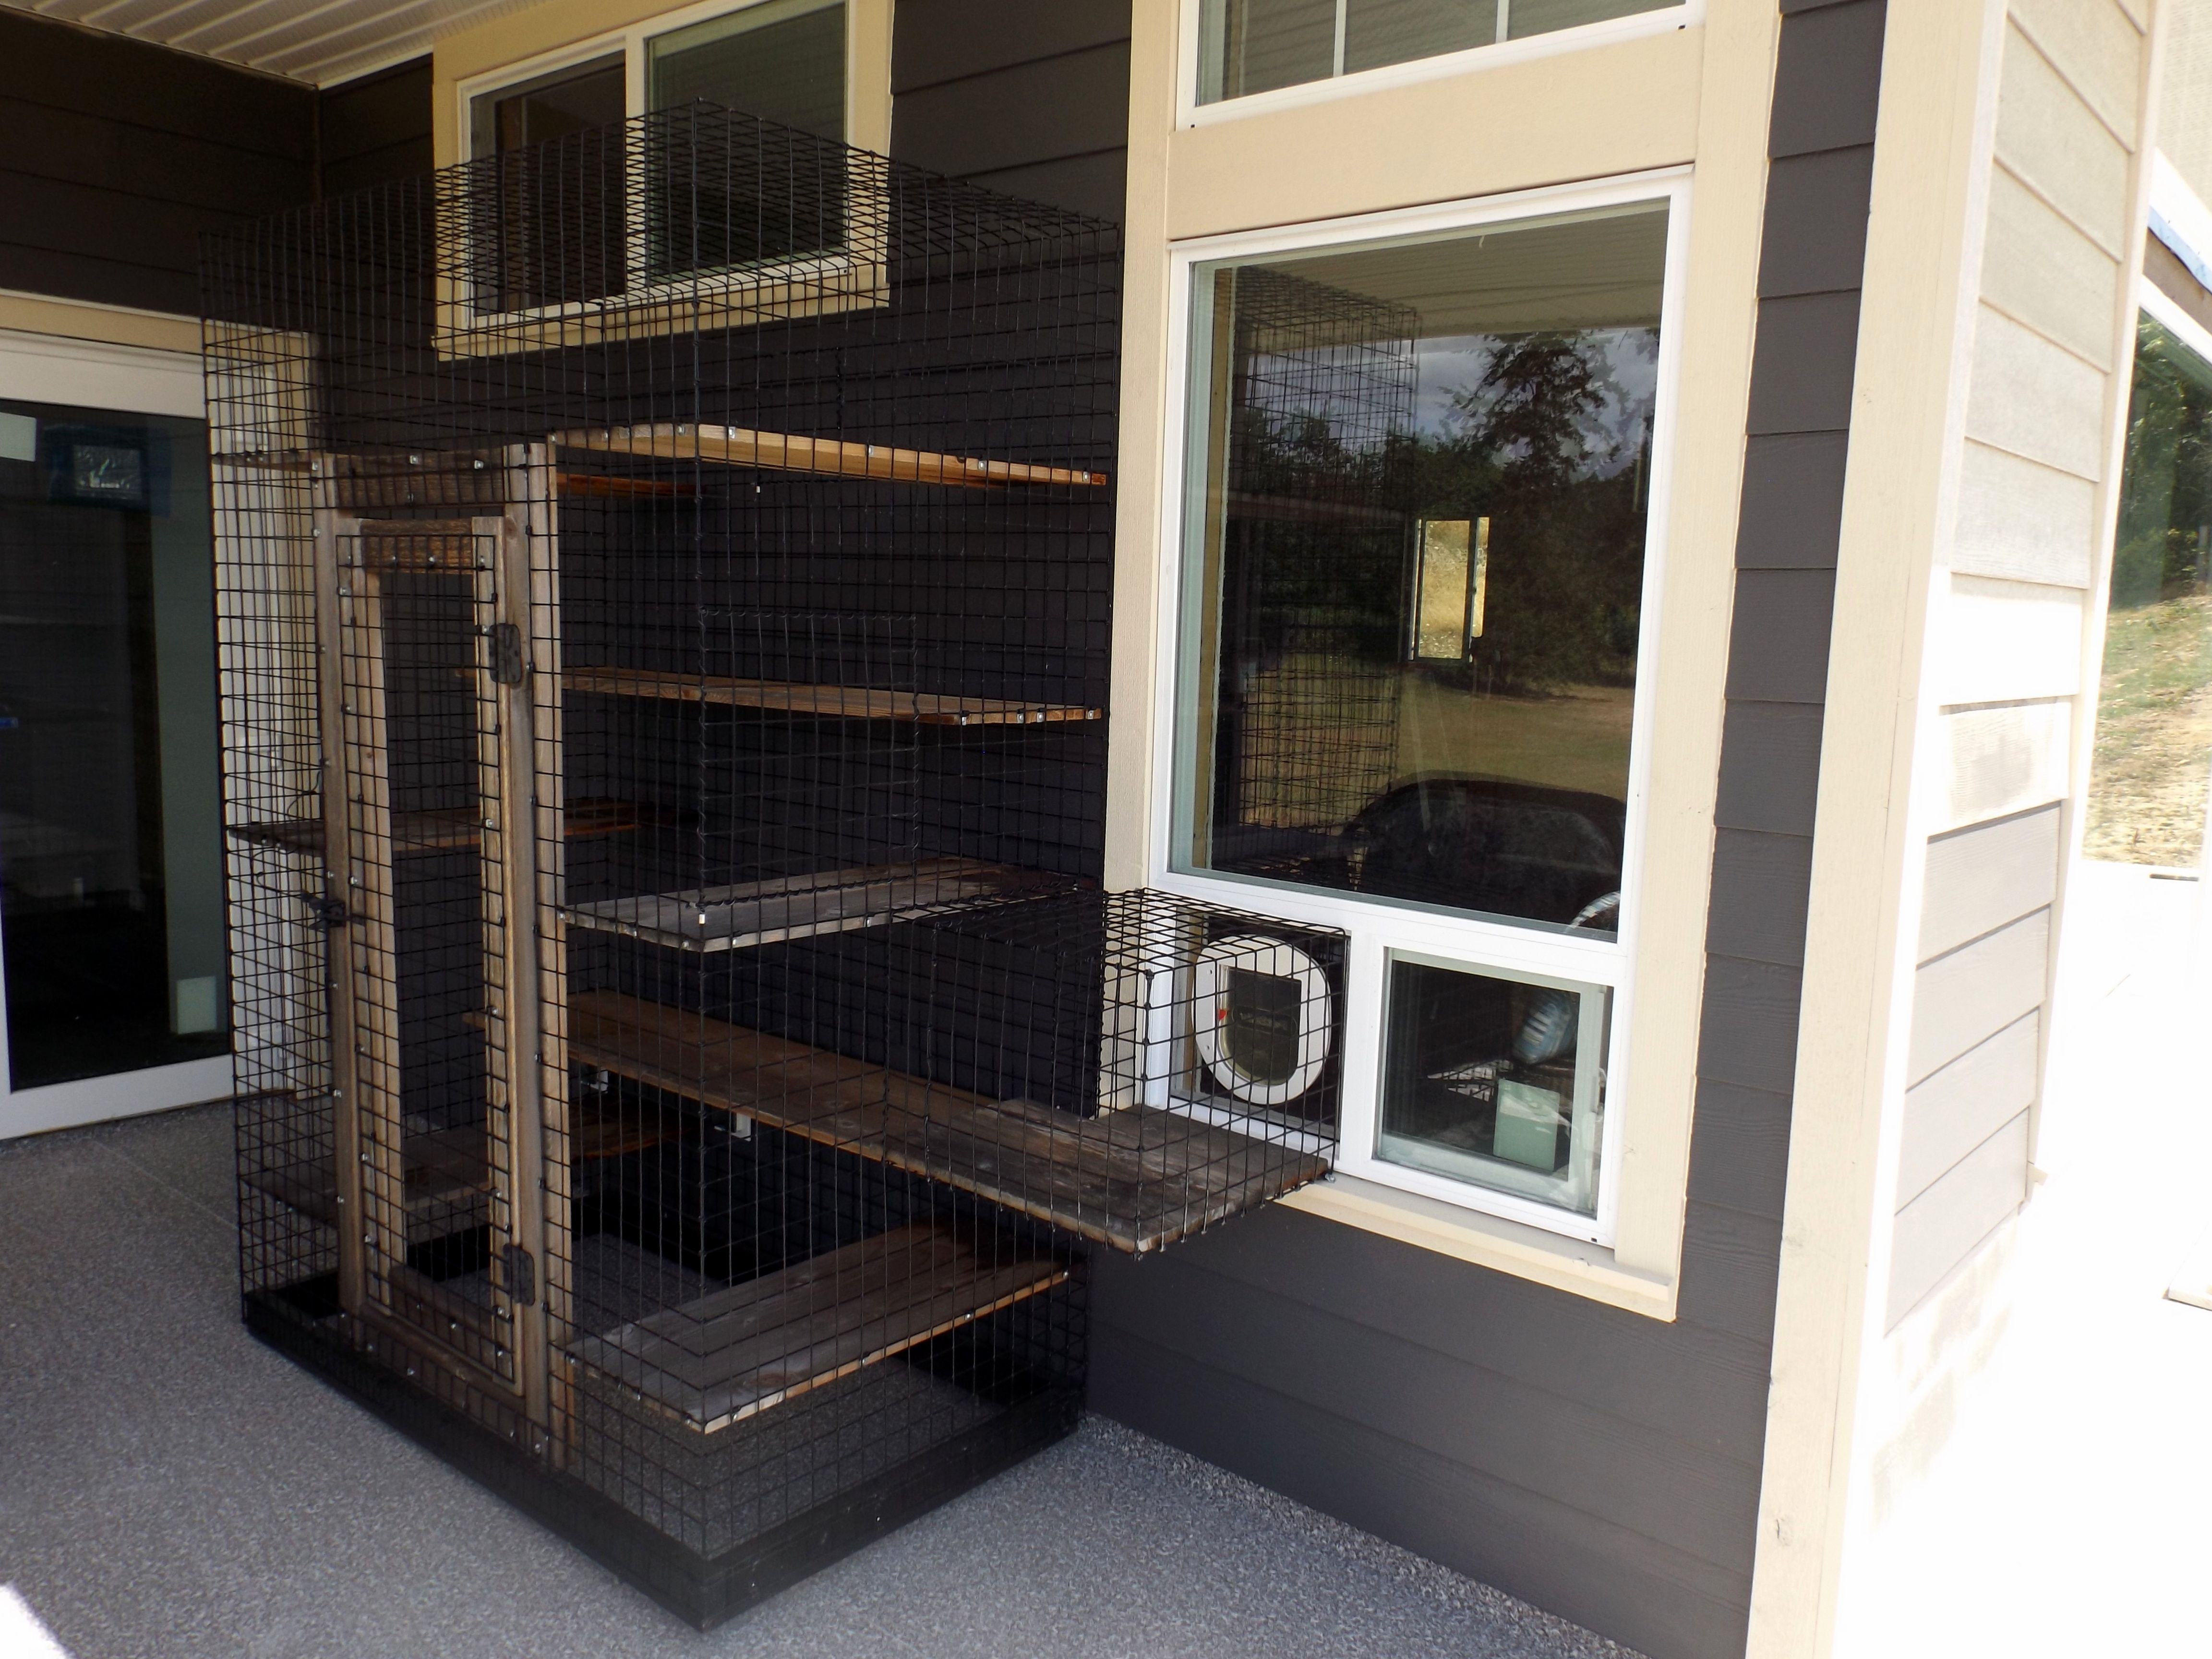 Covered Deck Enclosure, By Beautiful World Living Environments, Catscape.ca